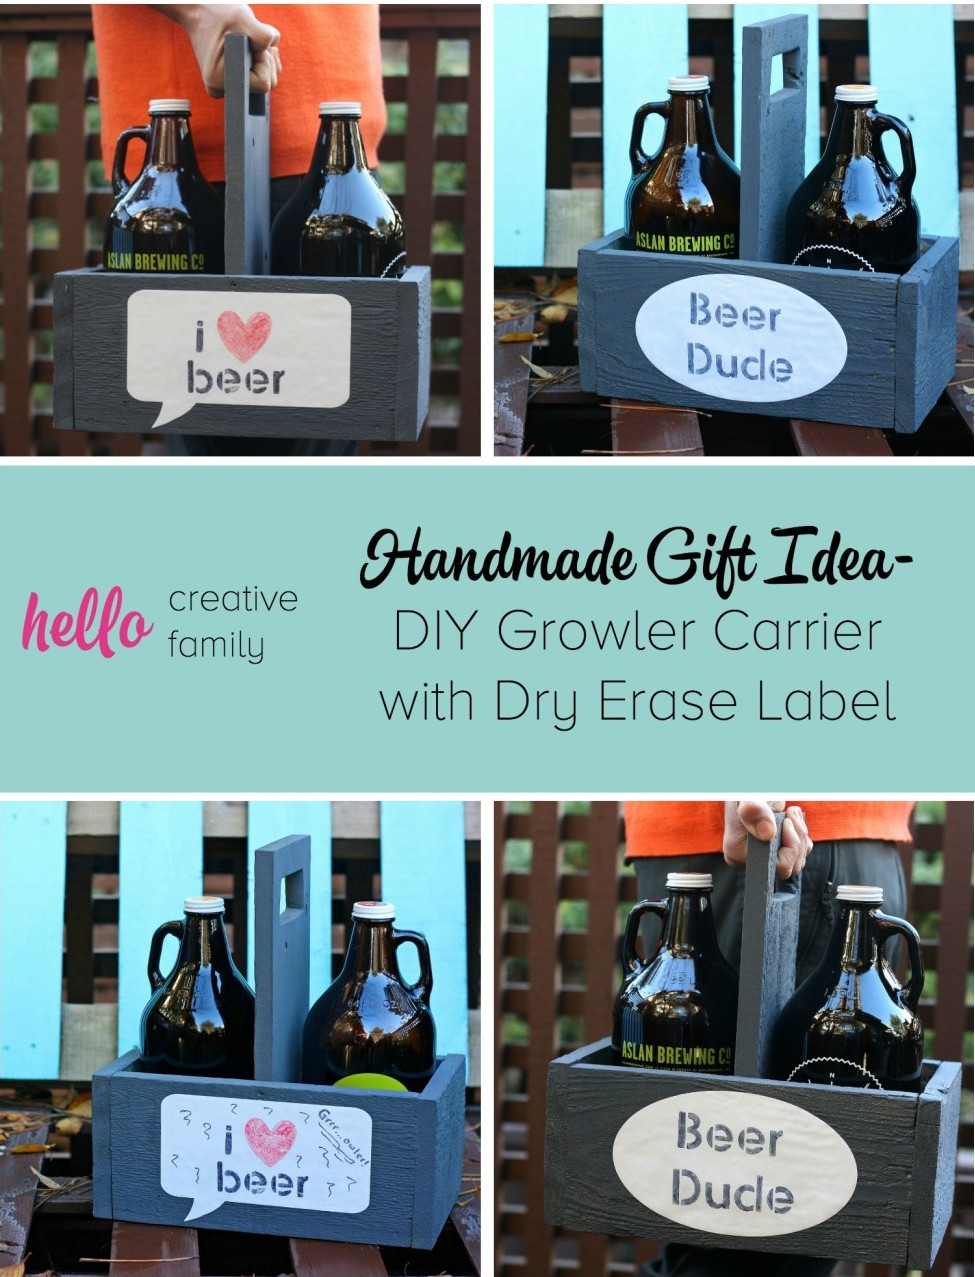 Handmade Gift Idea Diy Growler Carrier With Dry Erase Label Hello